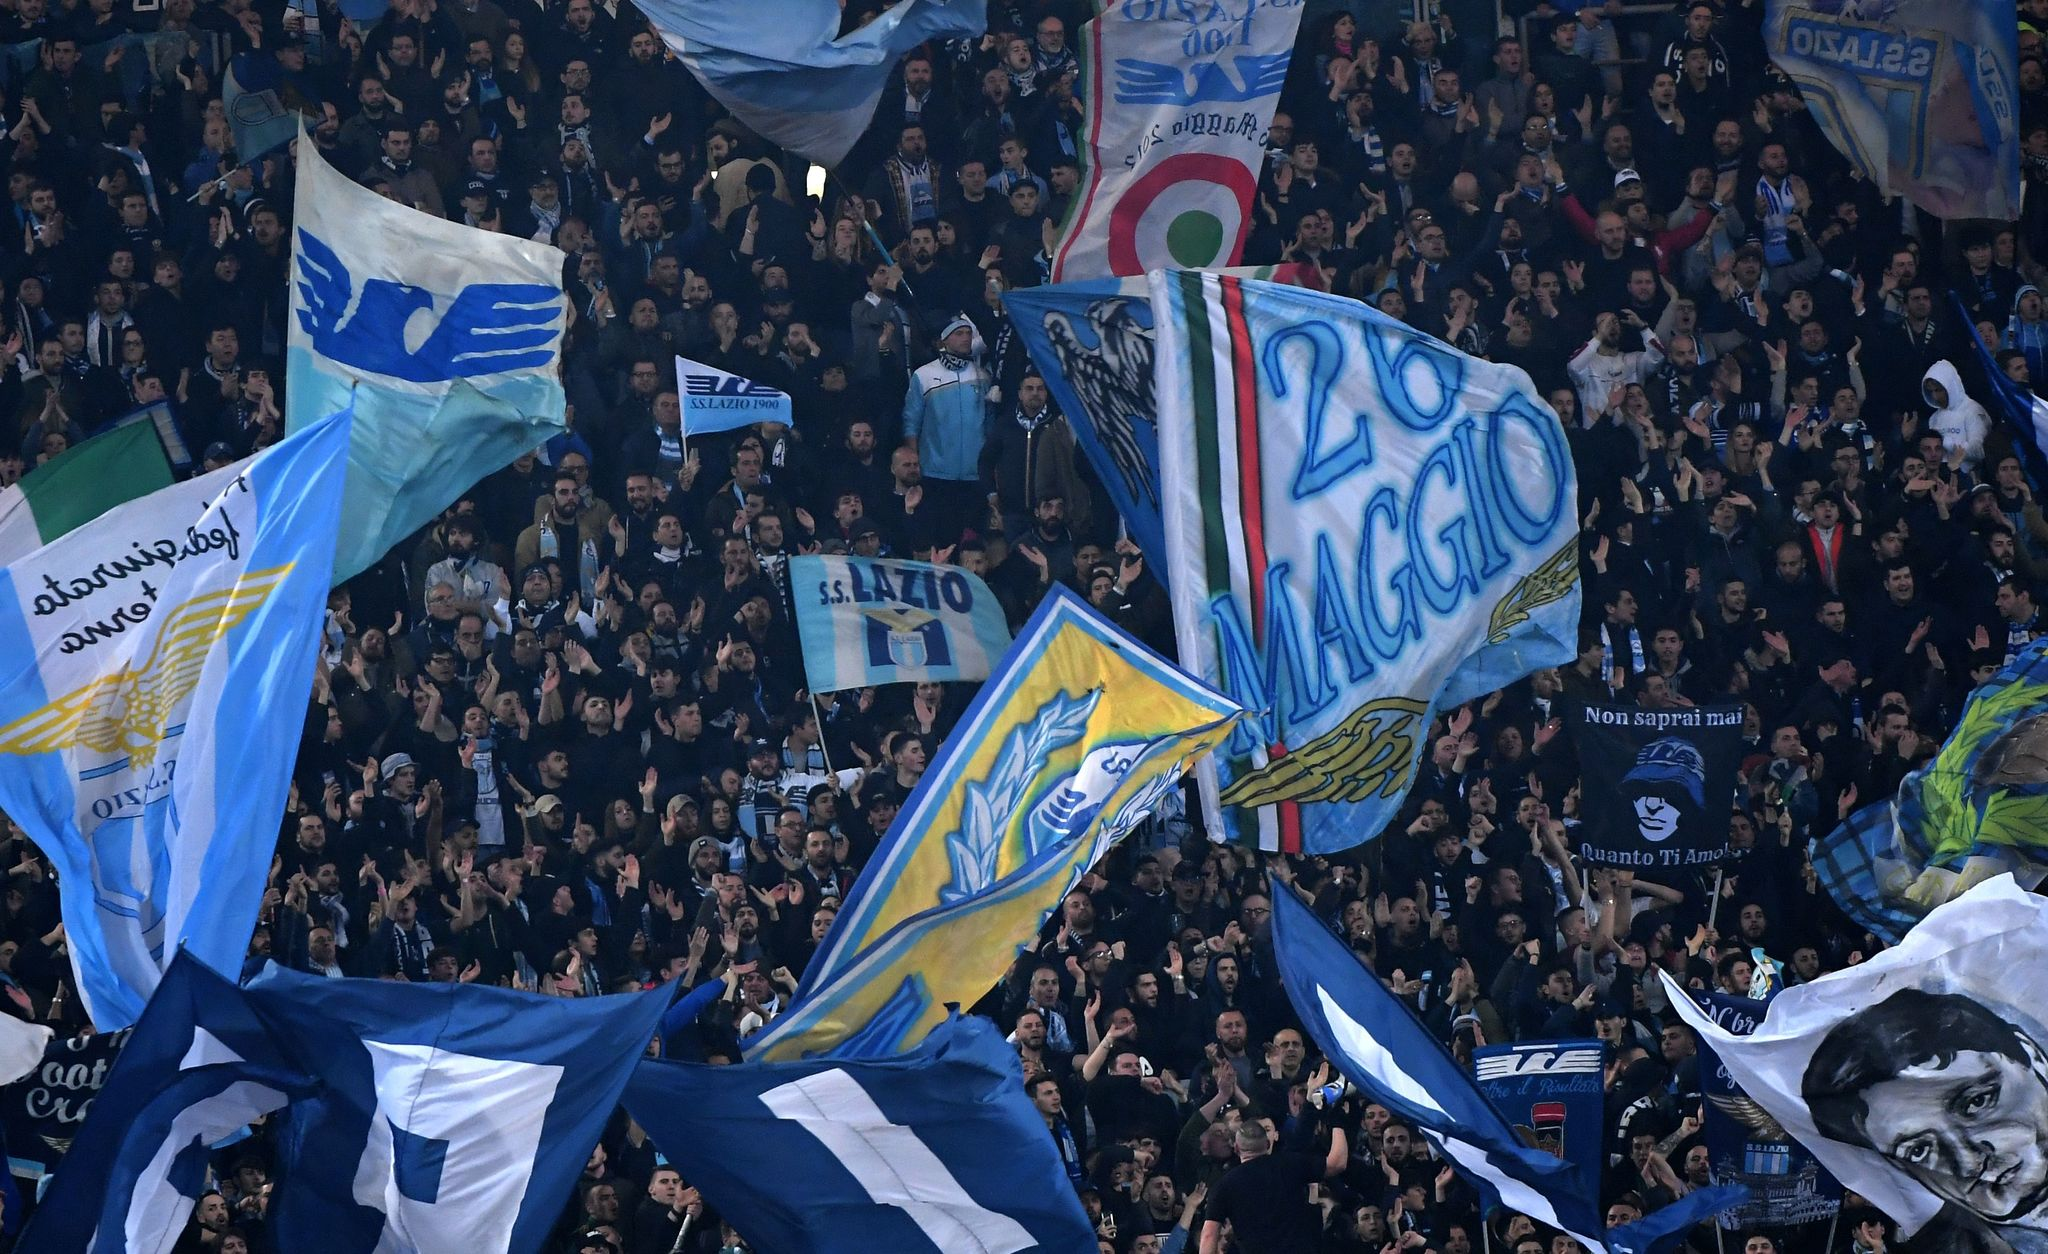 <HIT>Lazio</HIT>s supporters cheer during the Italian Serie A football match <HIT>Lazio</HIT> vs Roma on March 2 , 2019 at the Olympic stadium in Rome. (Photo by Tiziana FABI / AFP)